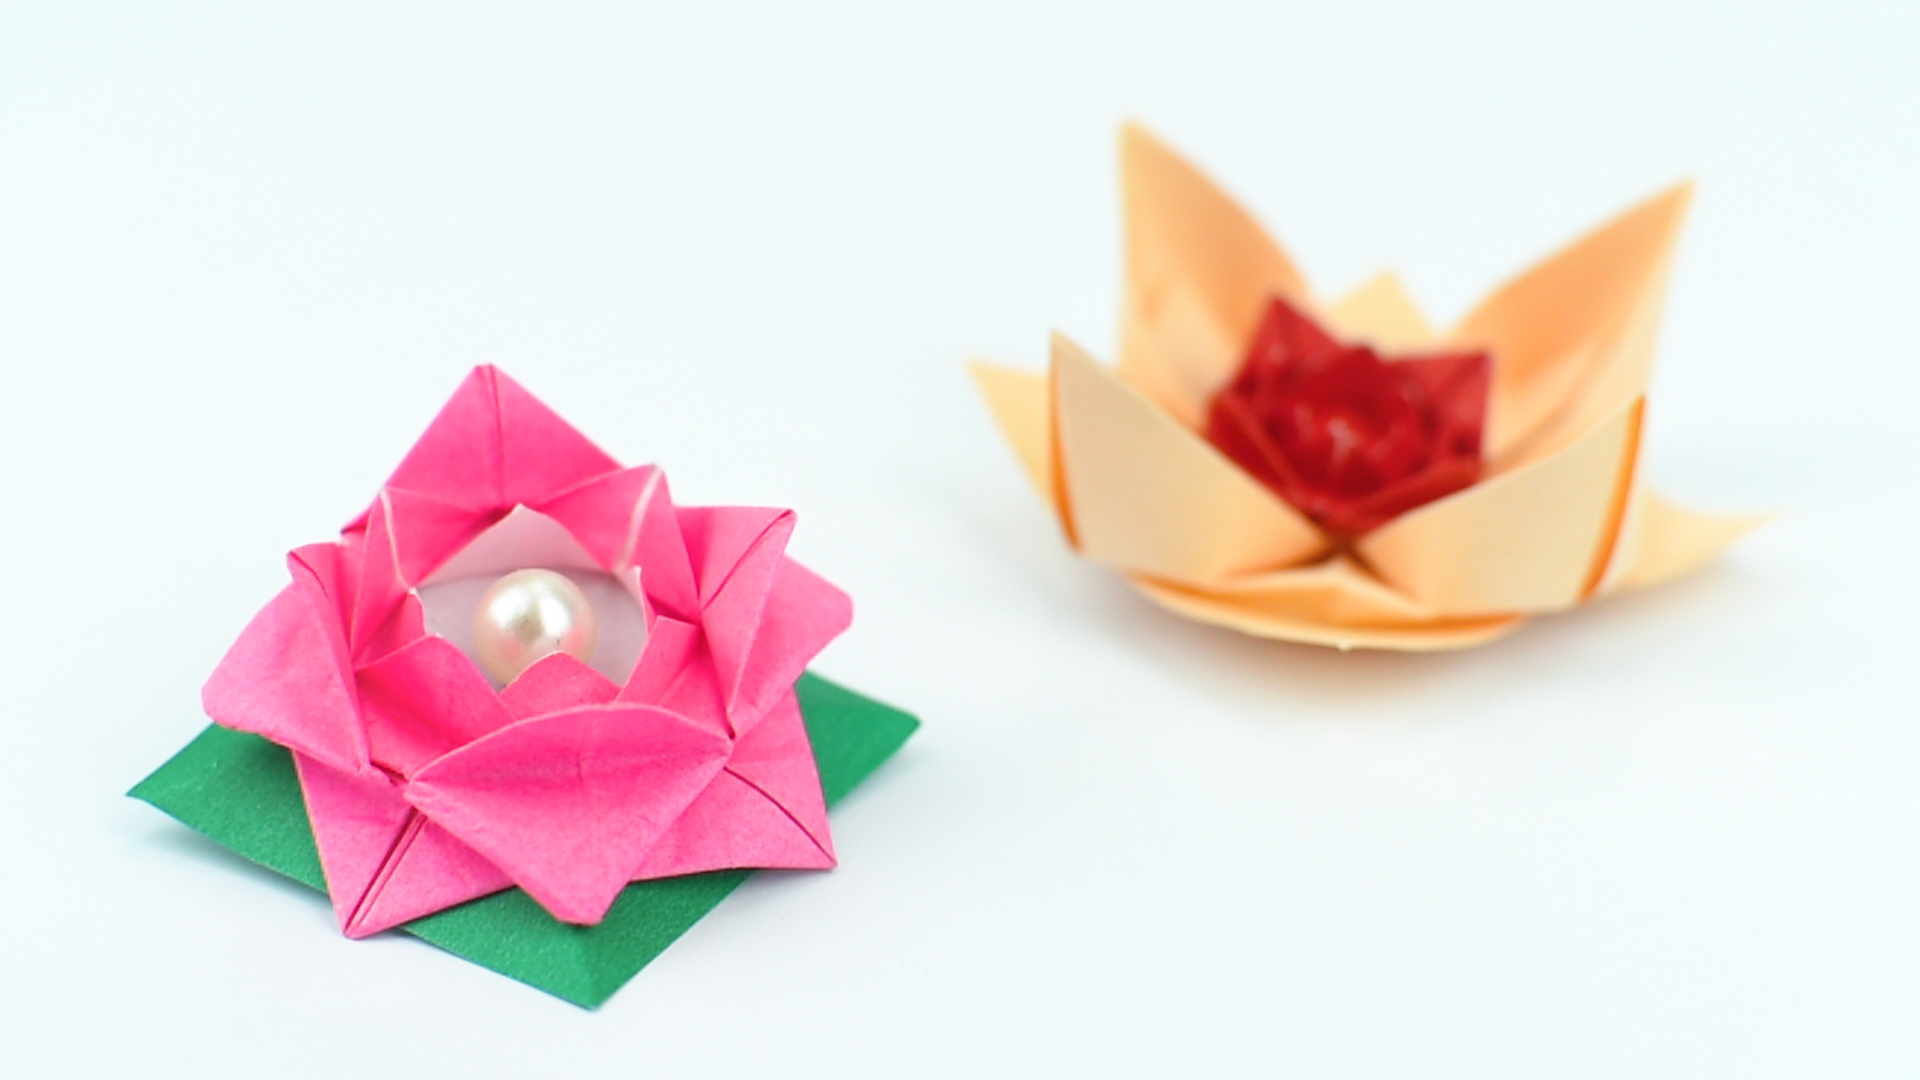 Origami Advanced Diagrams How To Make Origami For Beginners Flowers Animals And More